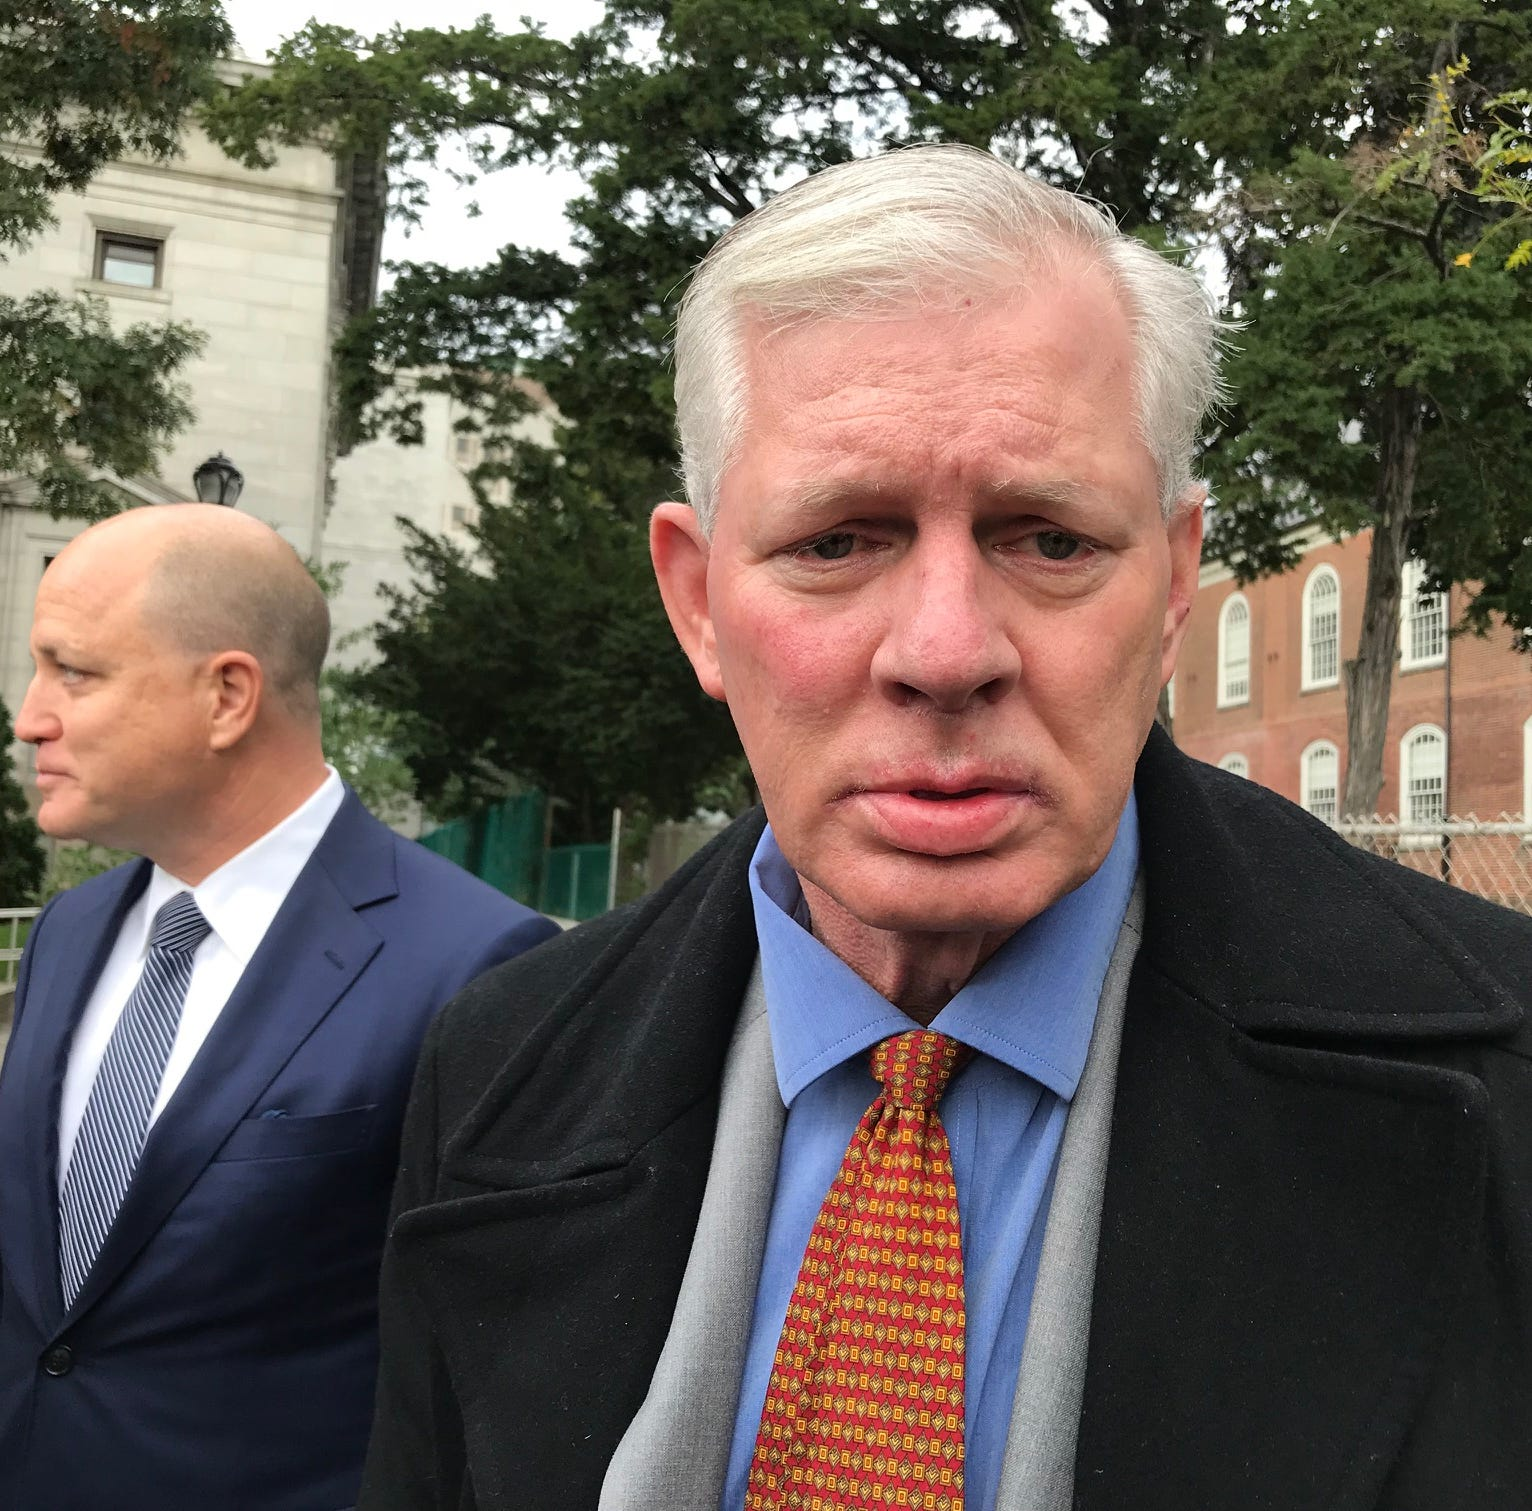 Lenny Dykstra pleads guilty to illegally running boarding house in Linden